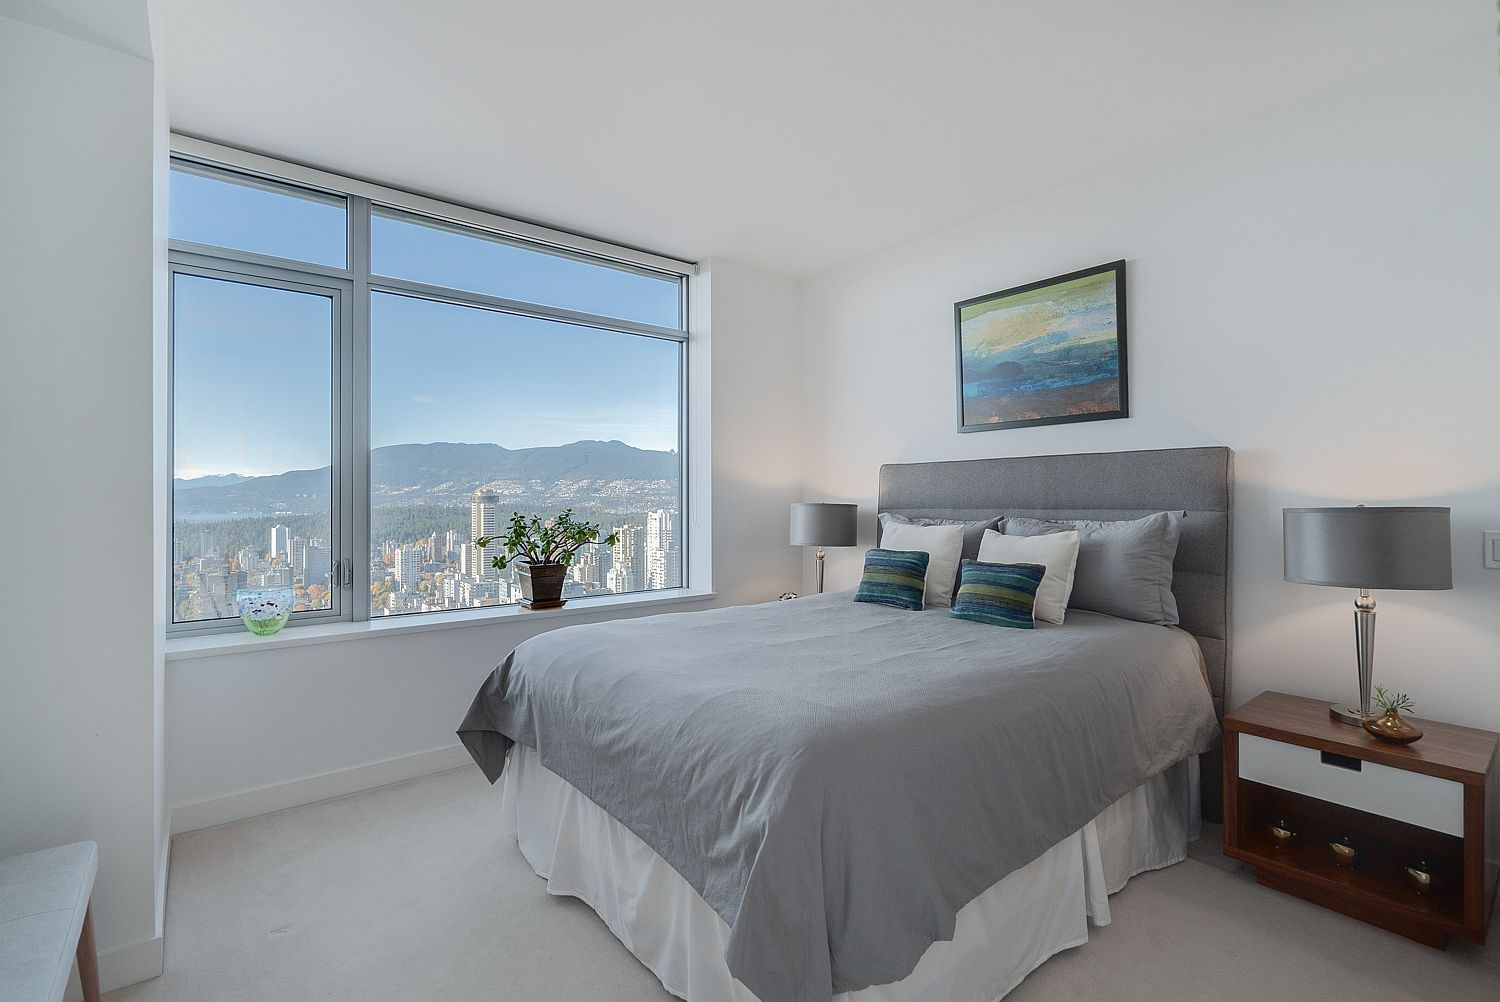 It is the views outside the bedroom window that add dramatic flair to the room